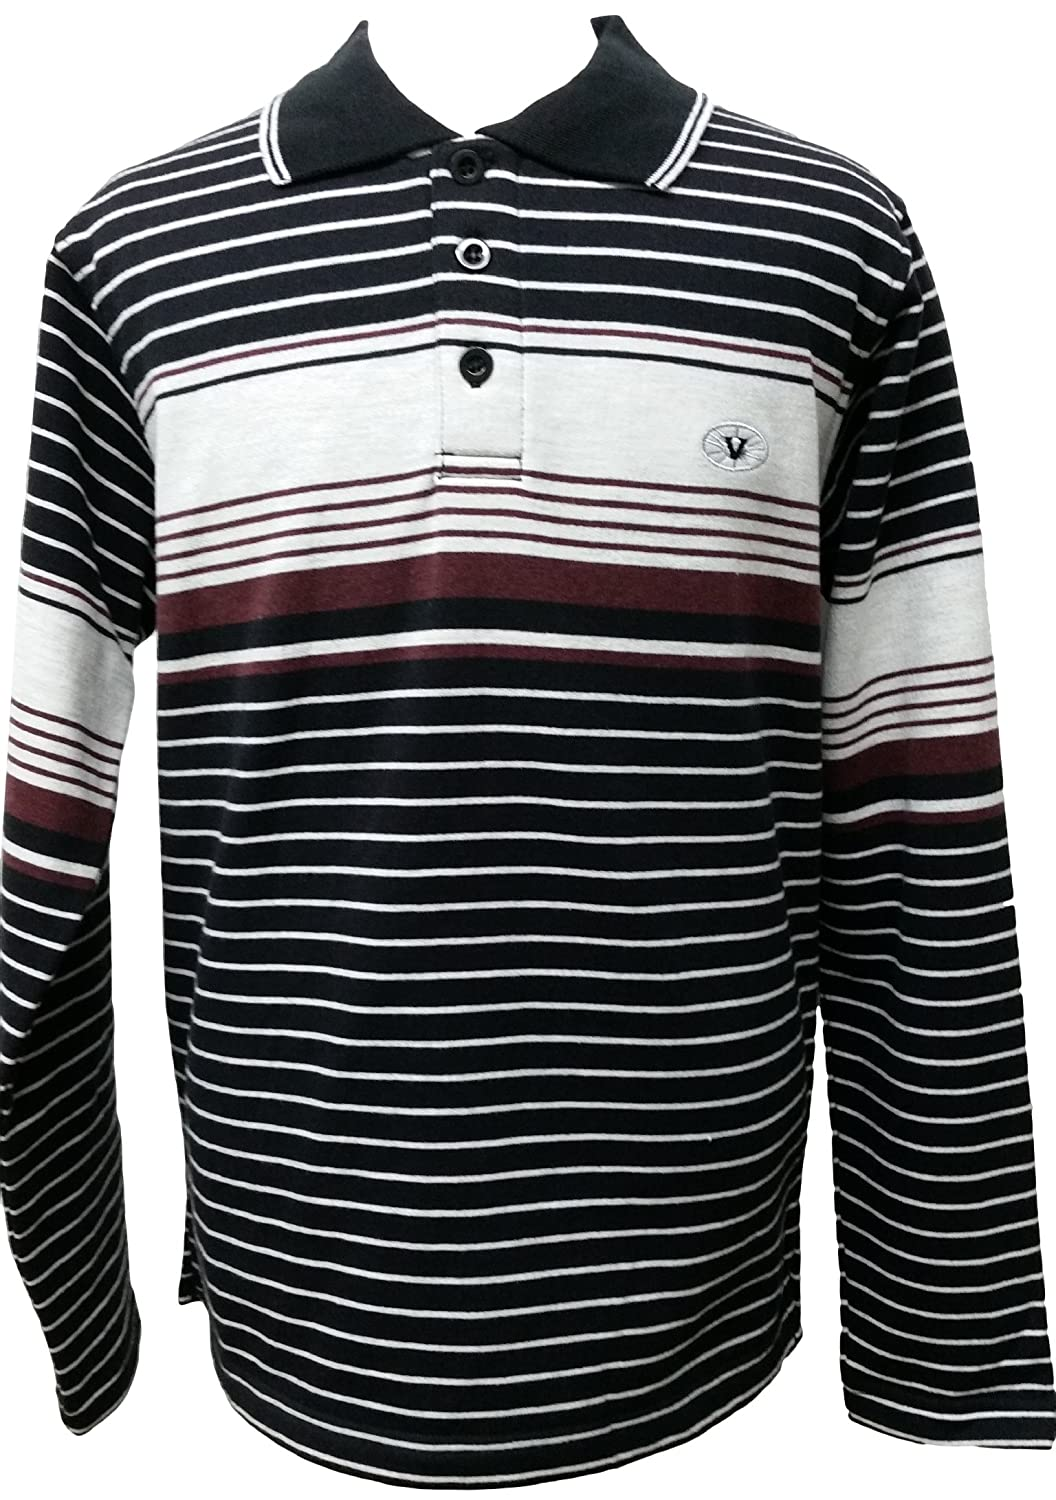 FLEECE BOY'S POLO SHIRT 360